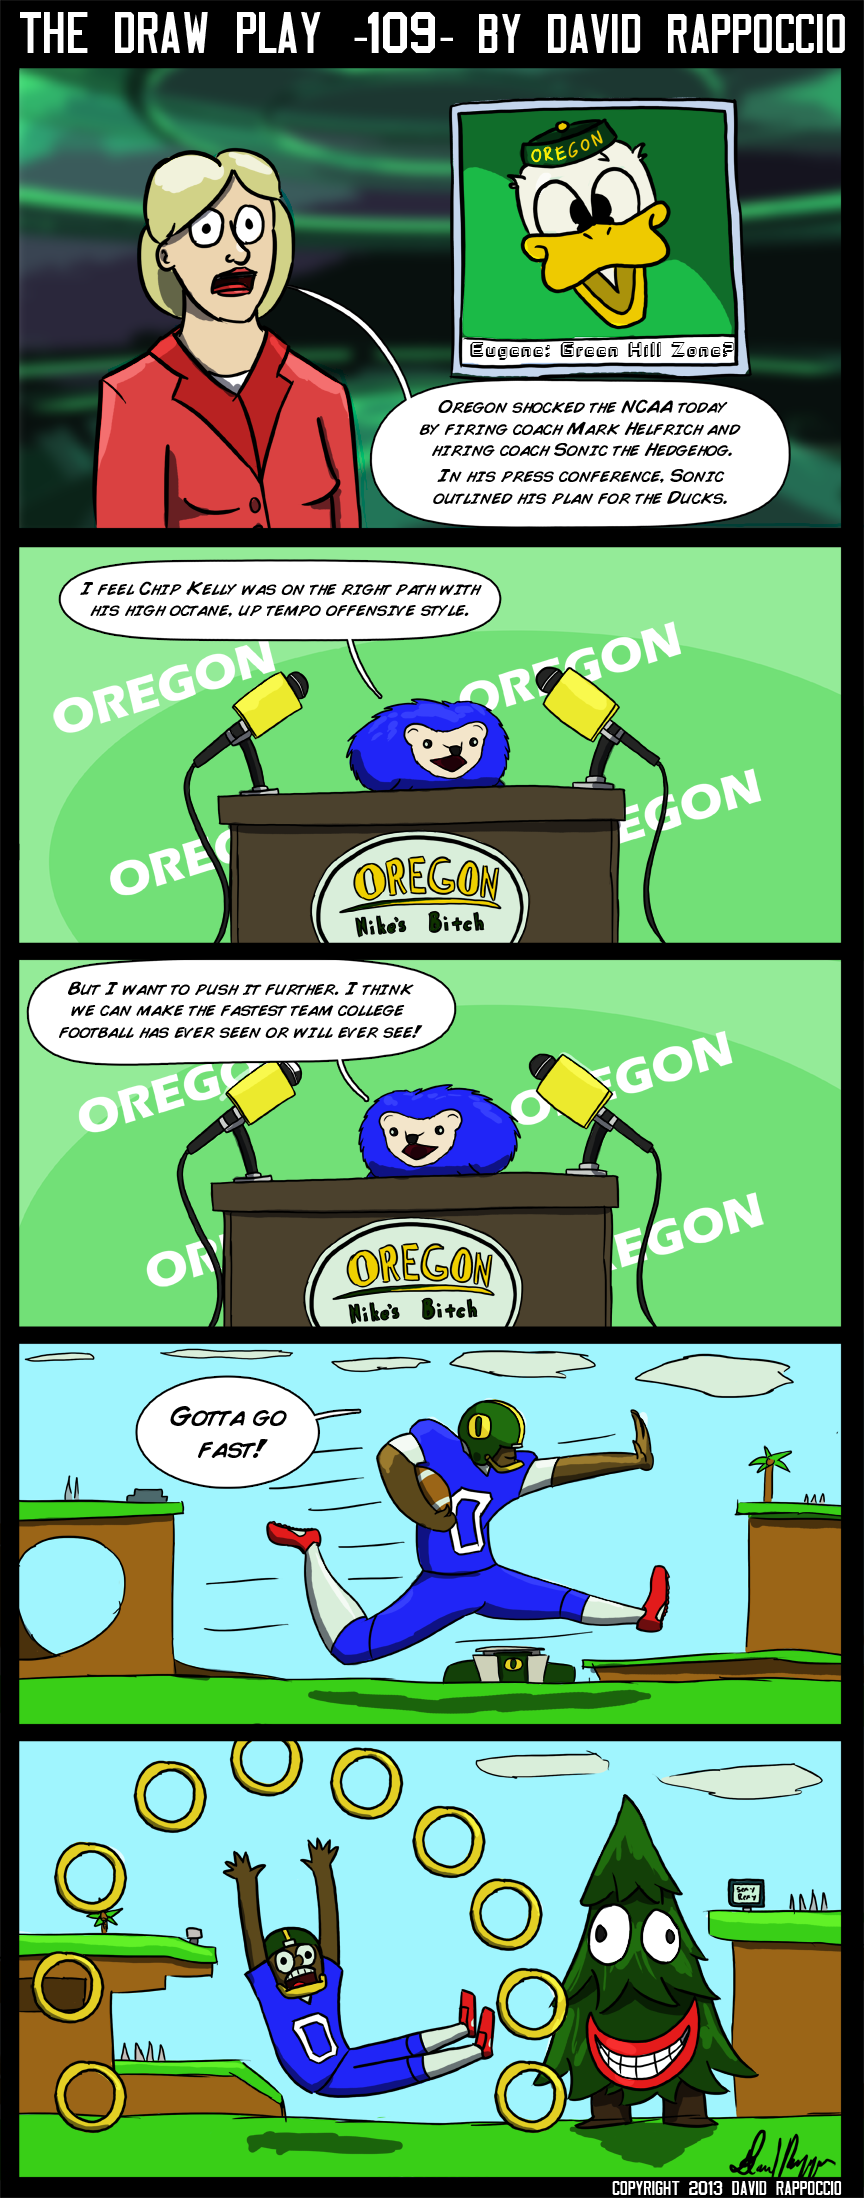 You got college in my NFL comic!